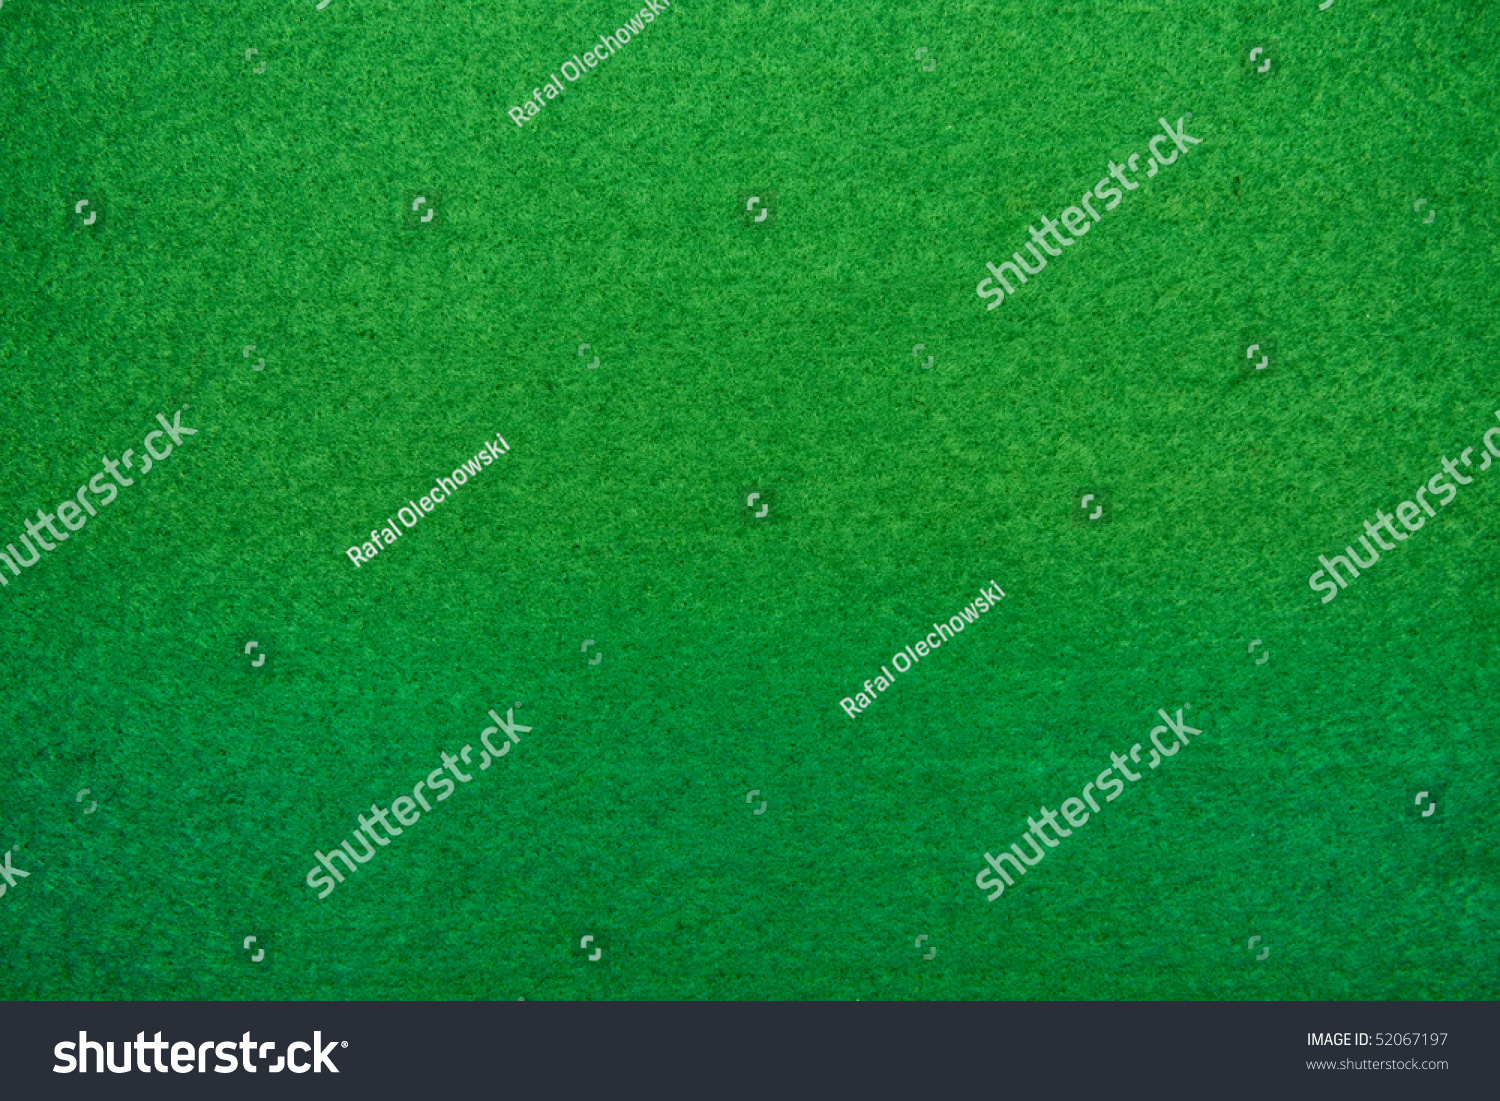 Poker Table Background - Close up of green poker table felt background